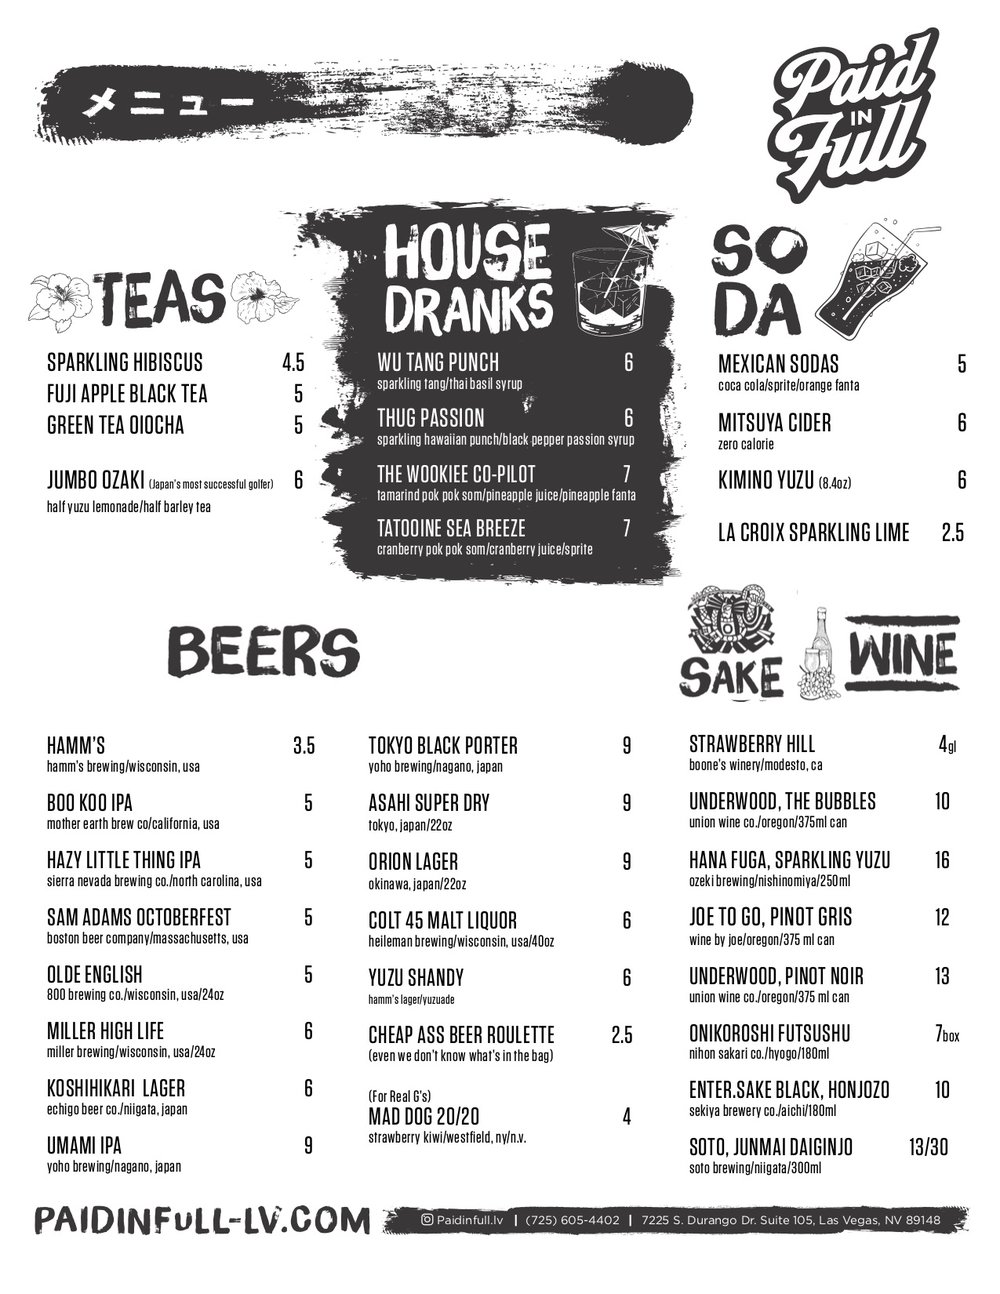 *actual menu may vary as we like to change items frequently